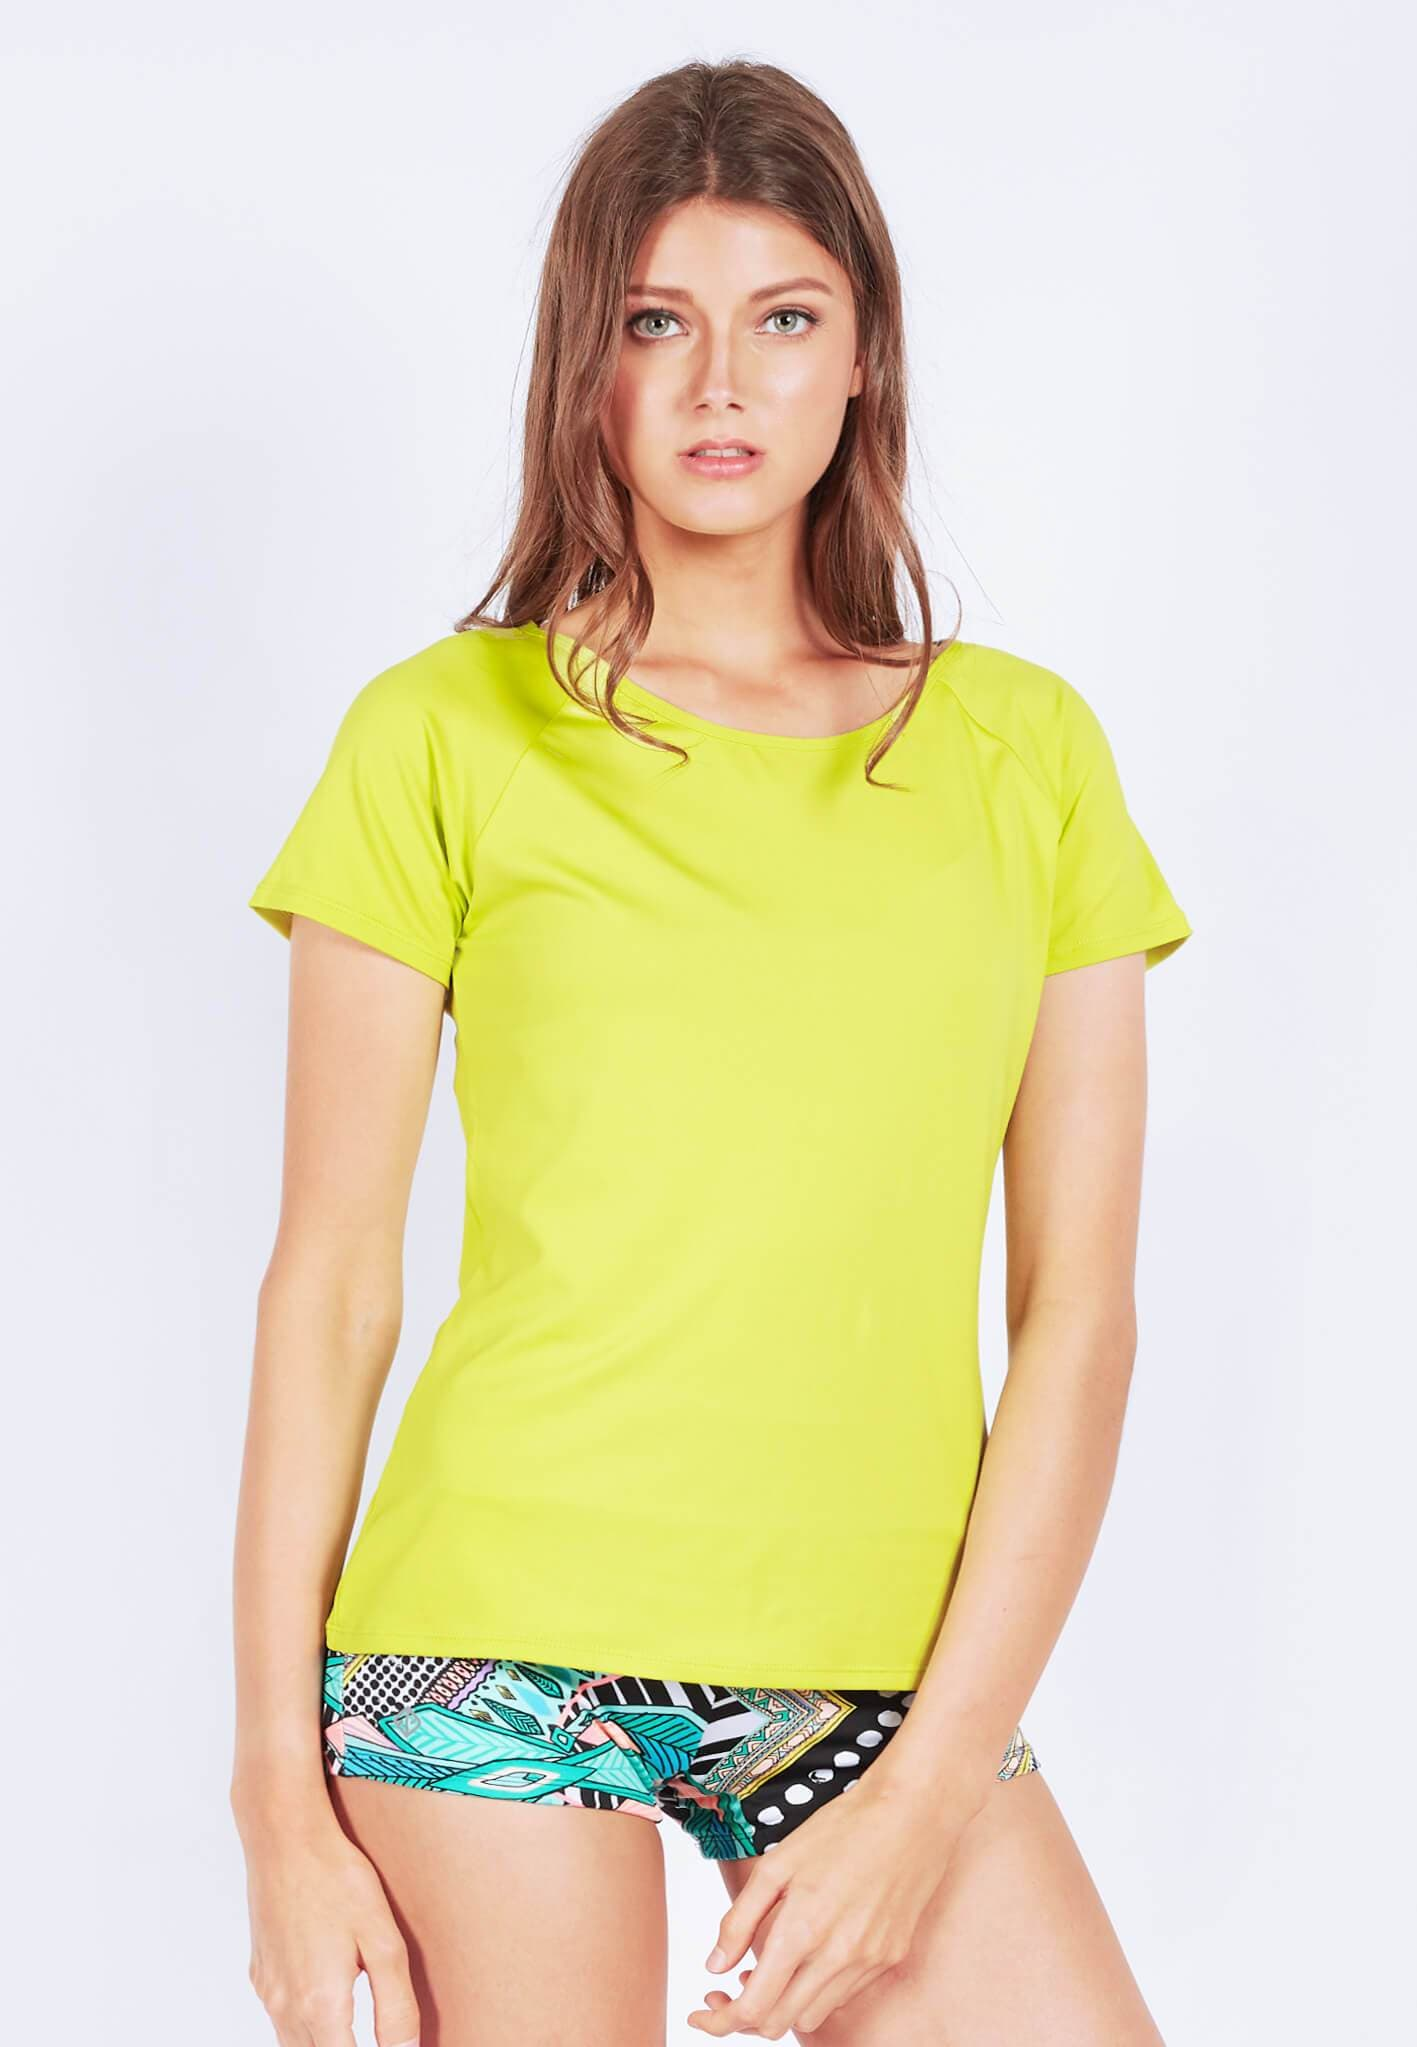 FUNFIT Power-Up Tee in Lime Yellow (S - XL)